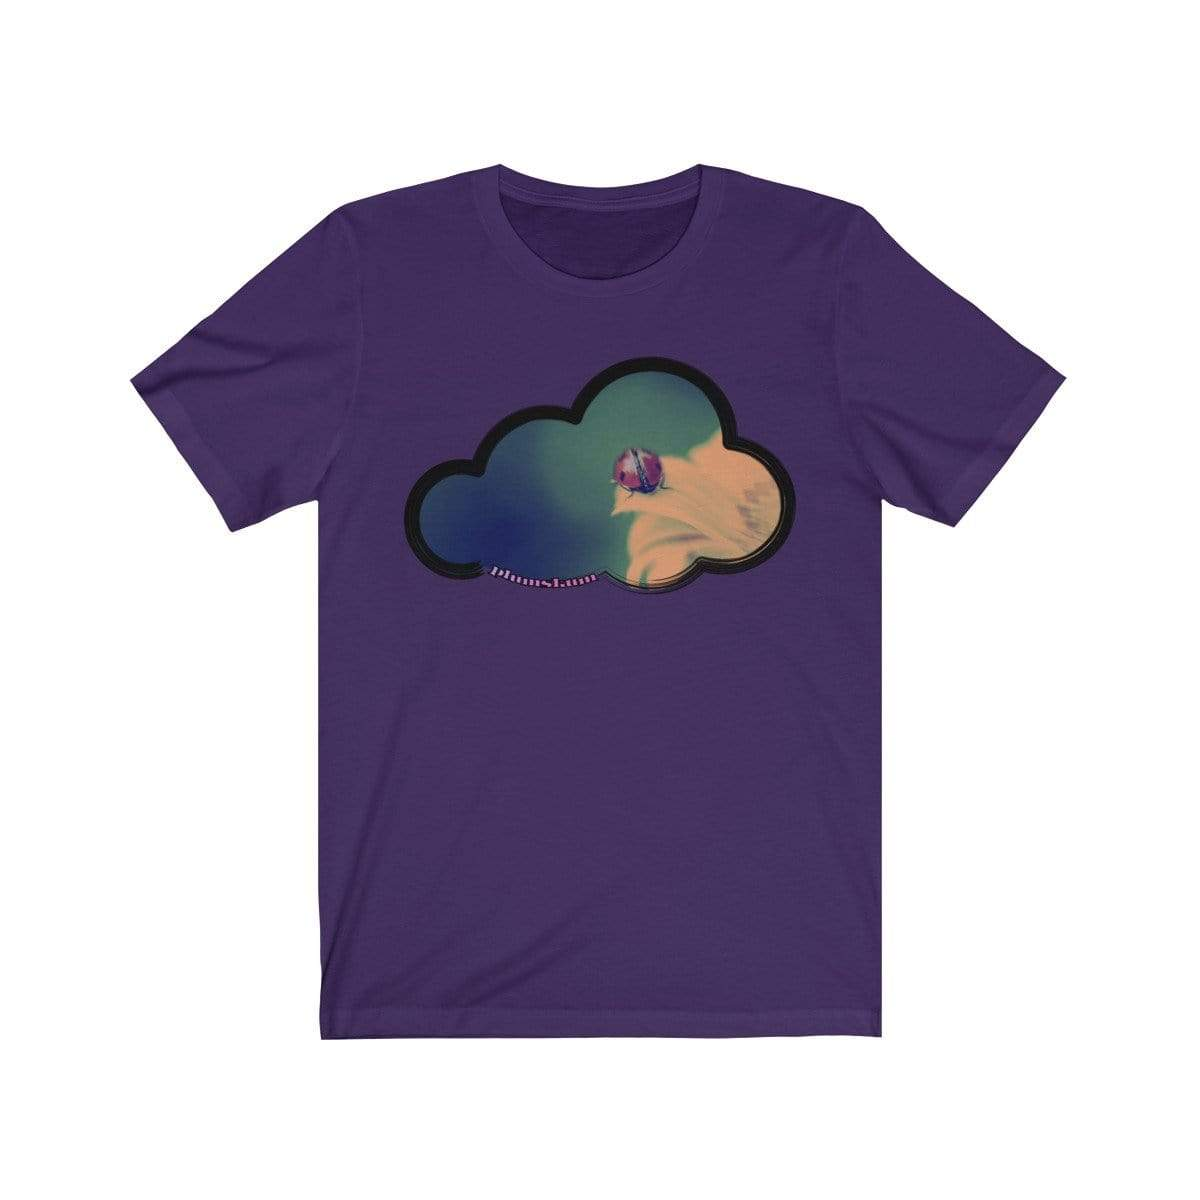 Printify T-Shirt Team Purple / M Ladybug Art Clouds Tee